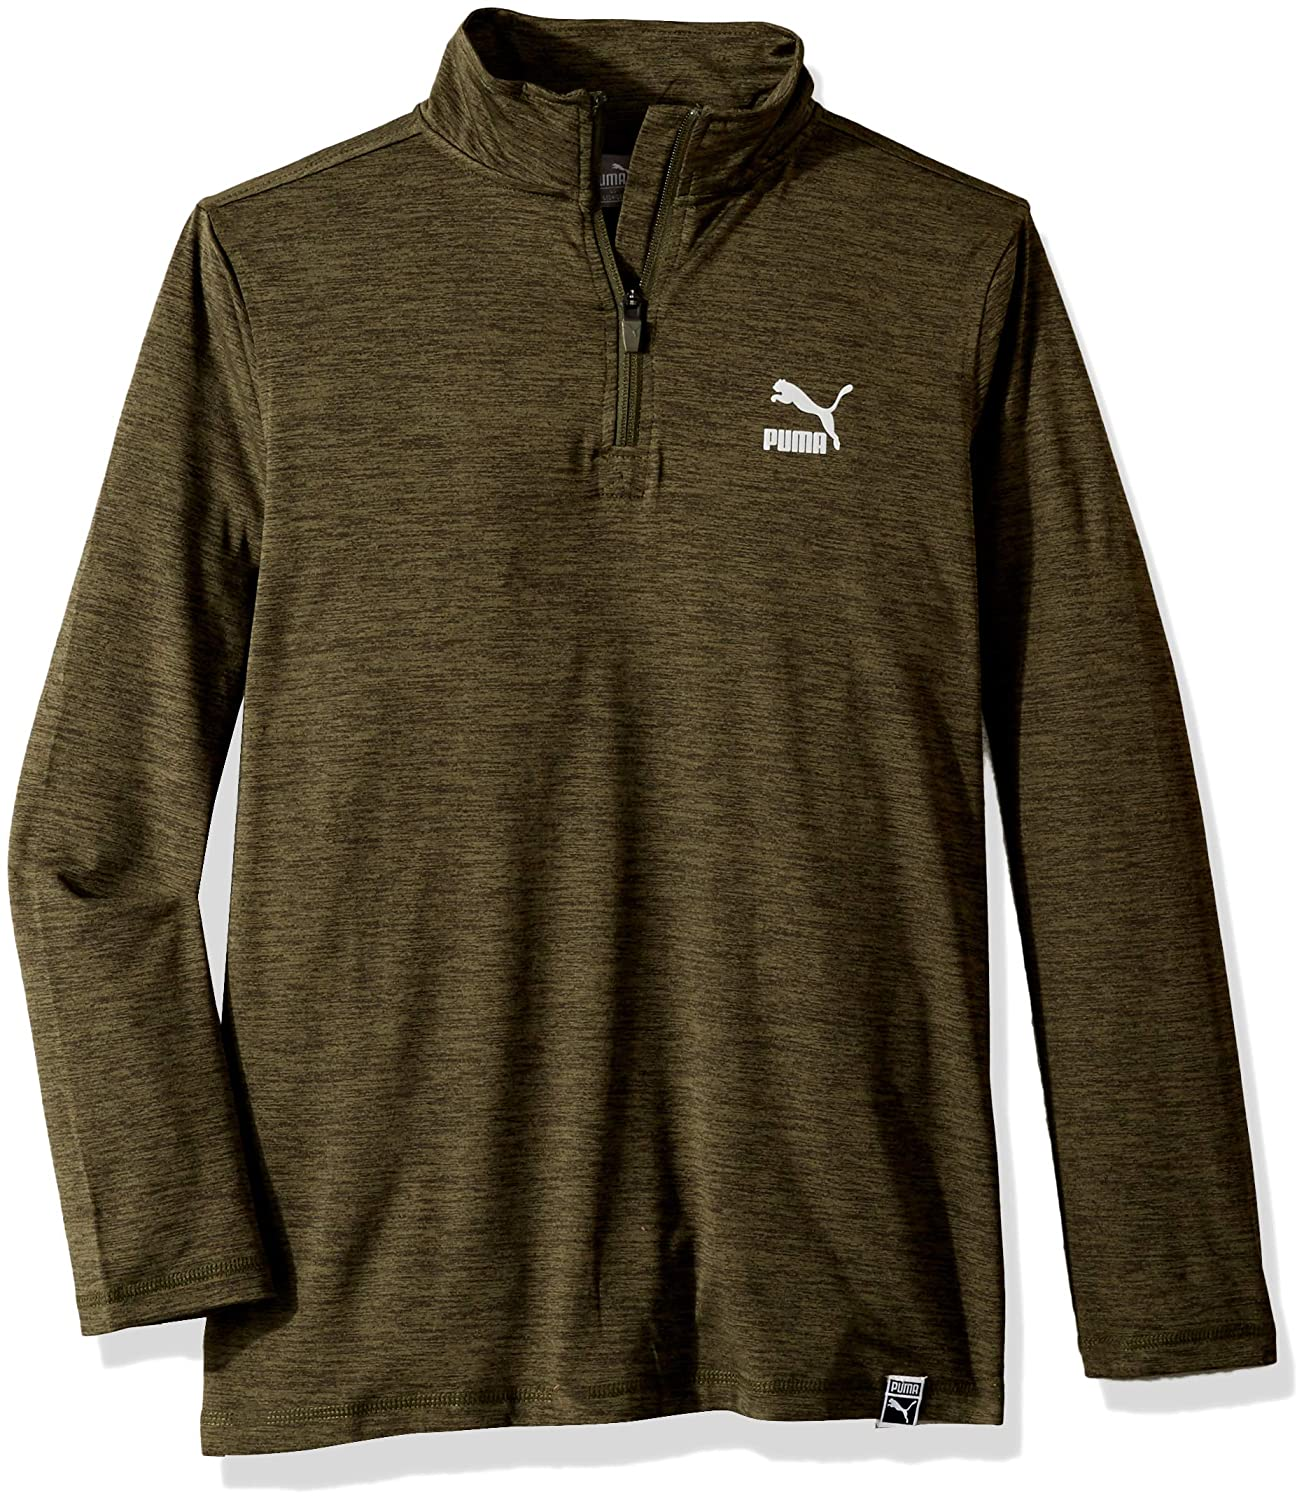 PUMA Boys' Quarter Zip Pullover